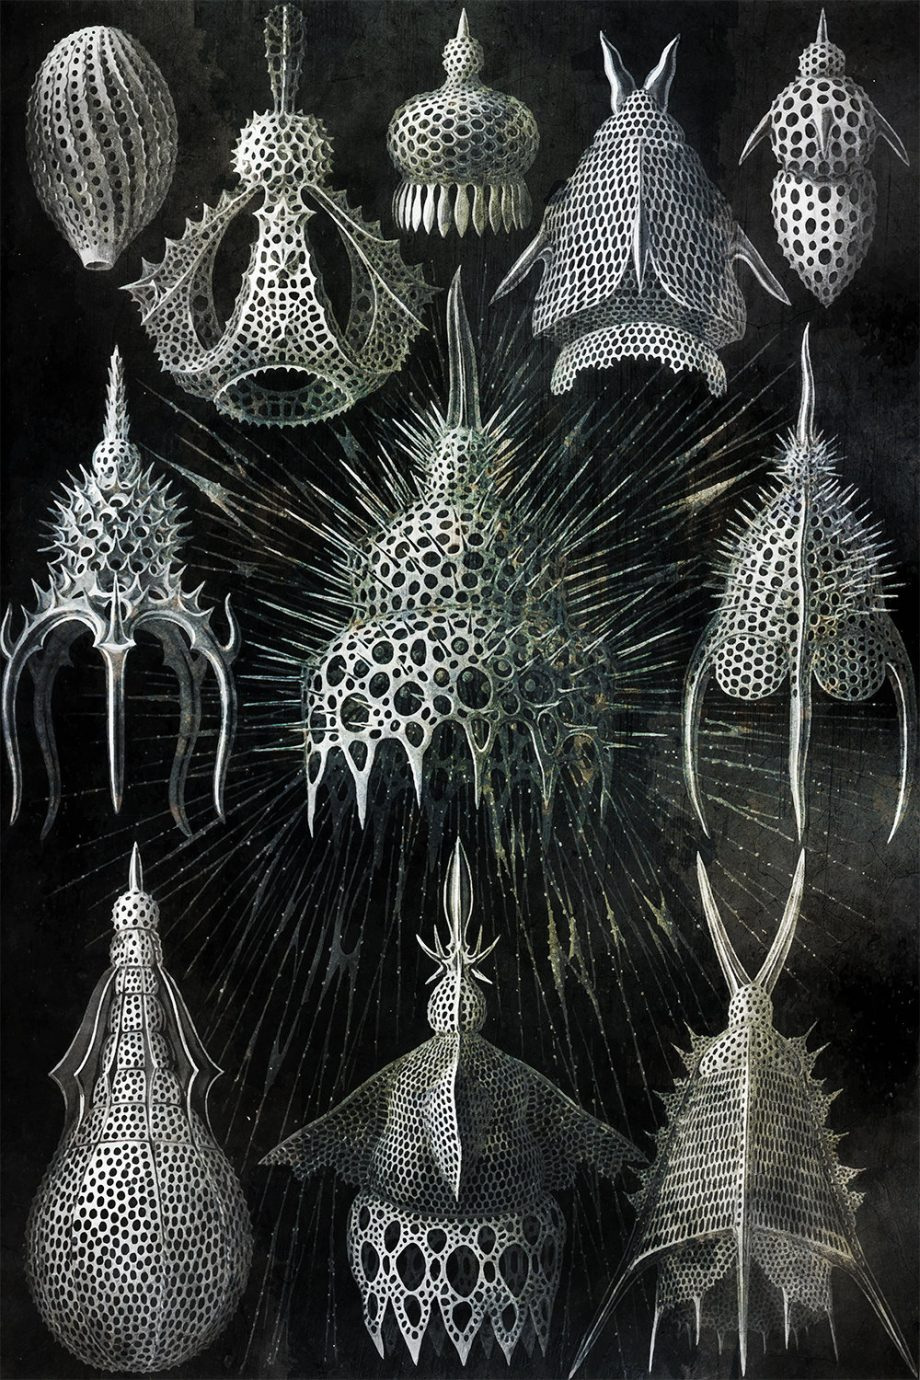 ernst-haeckel-cyrtoidea-print-shell-formations-art-vintage-nautical-decor-ocean-wall-art-giclee-print-on-cotton-canvas-and-paper-canvas-5817b3114.jpg